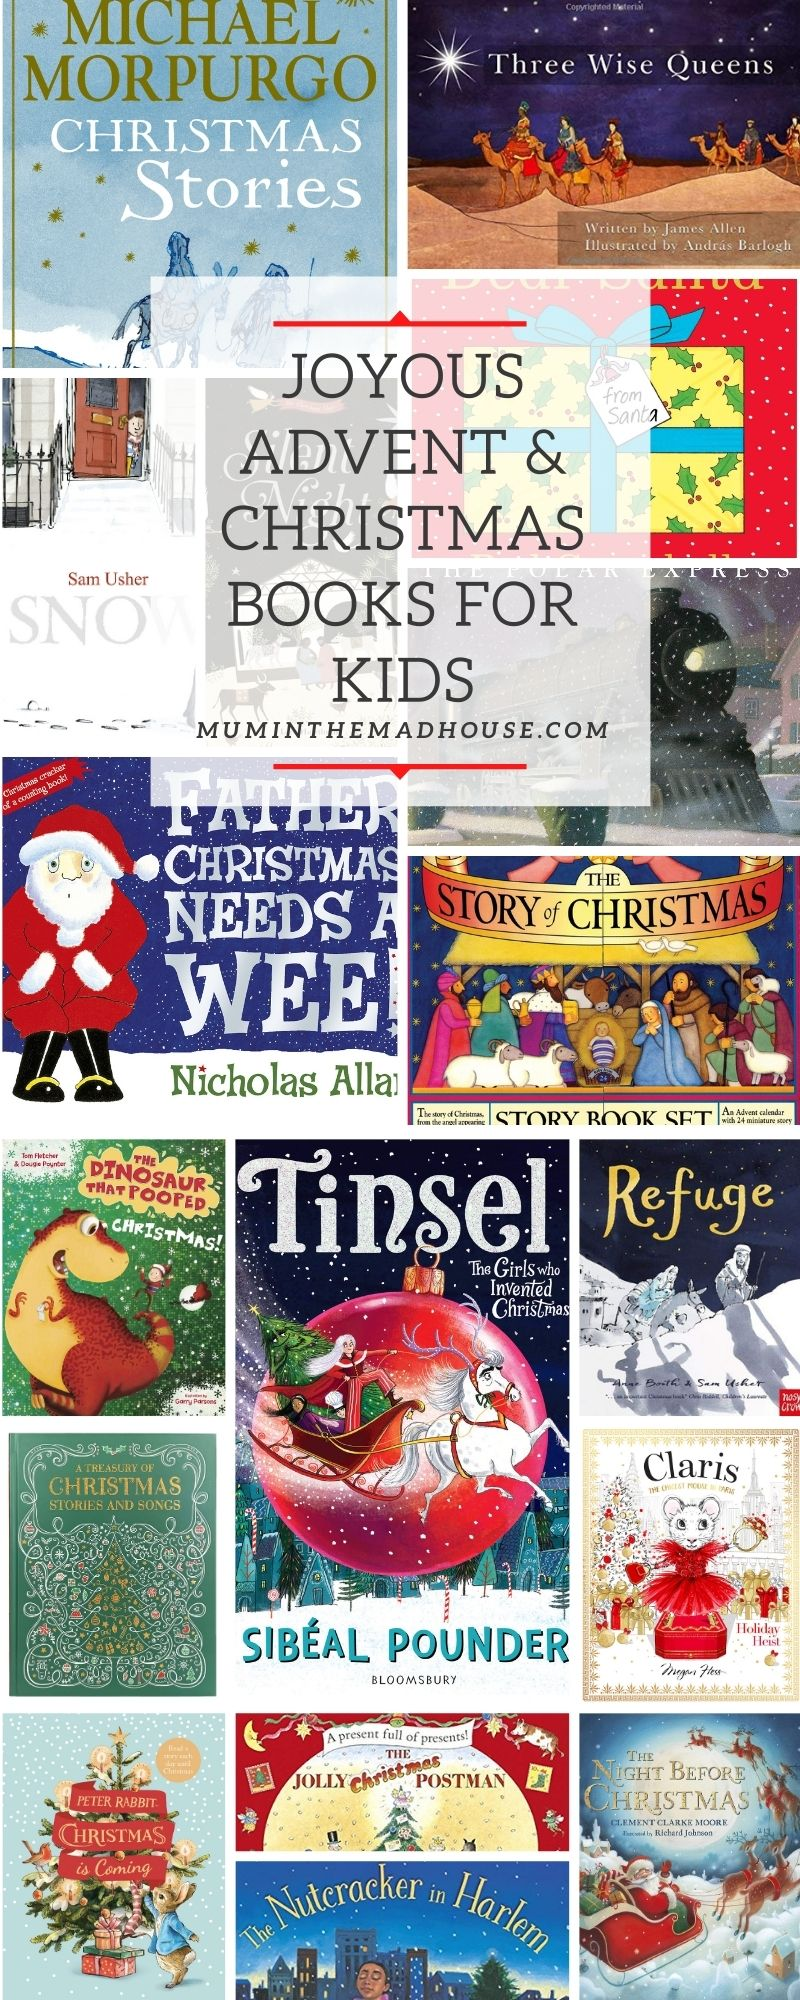 Joyous Advent and Christmas Books for Children.  Celebrate with these delightful festive books for all the family.